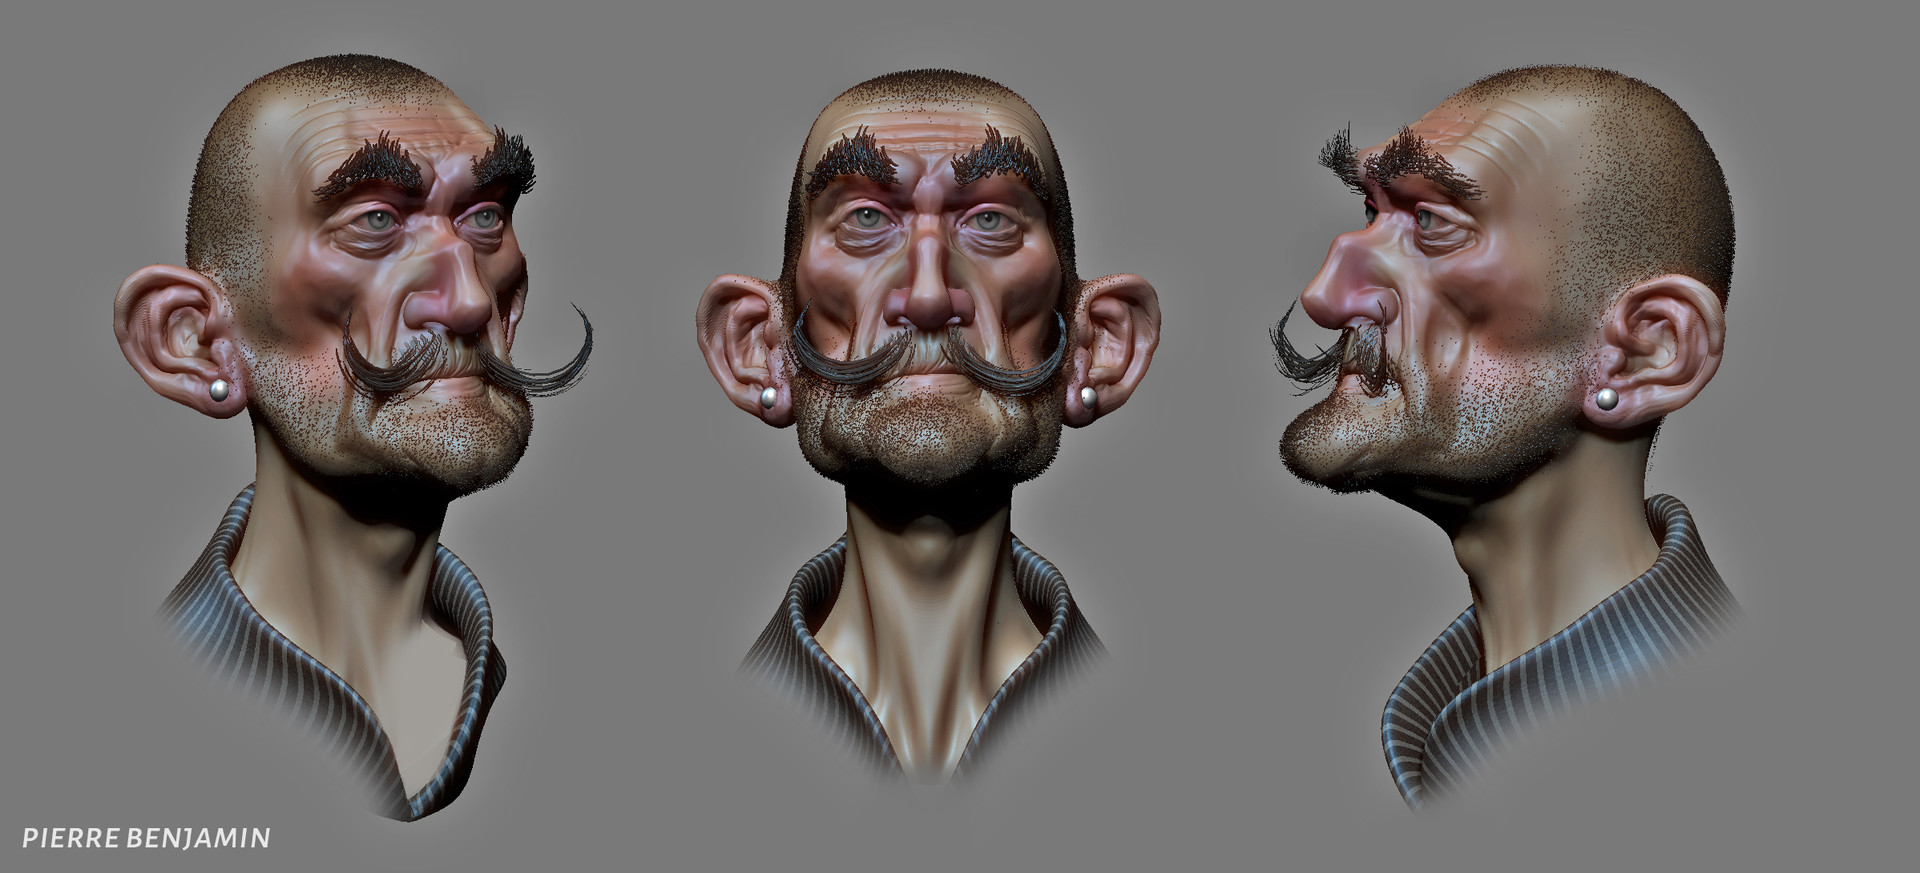 Pierre benjamin new shaved dude sculpt 001